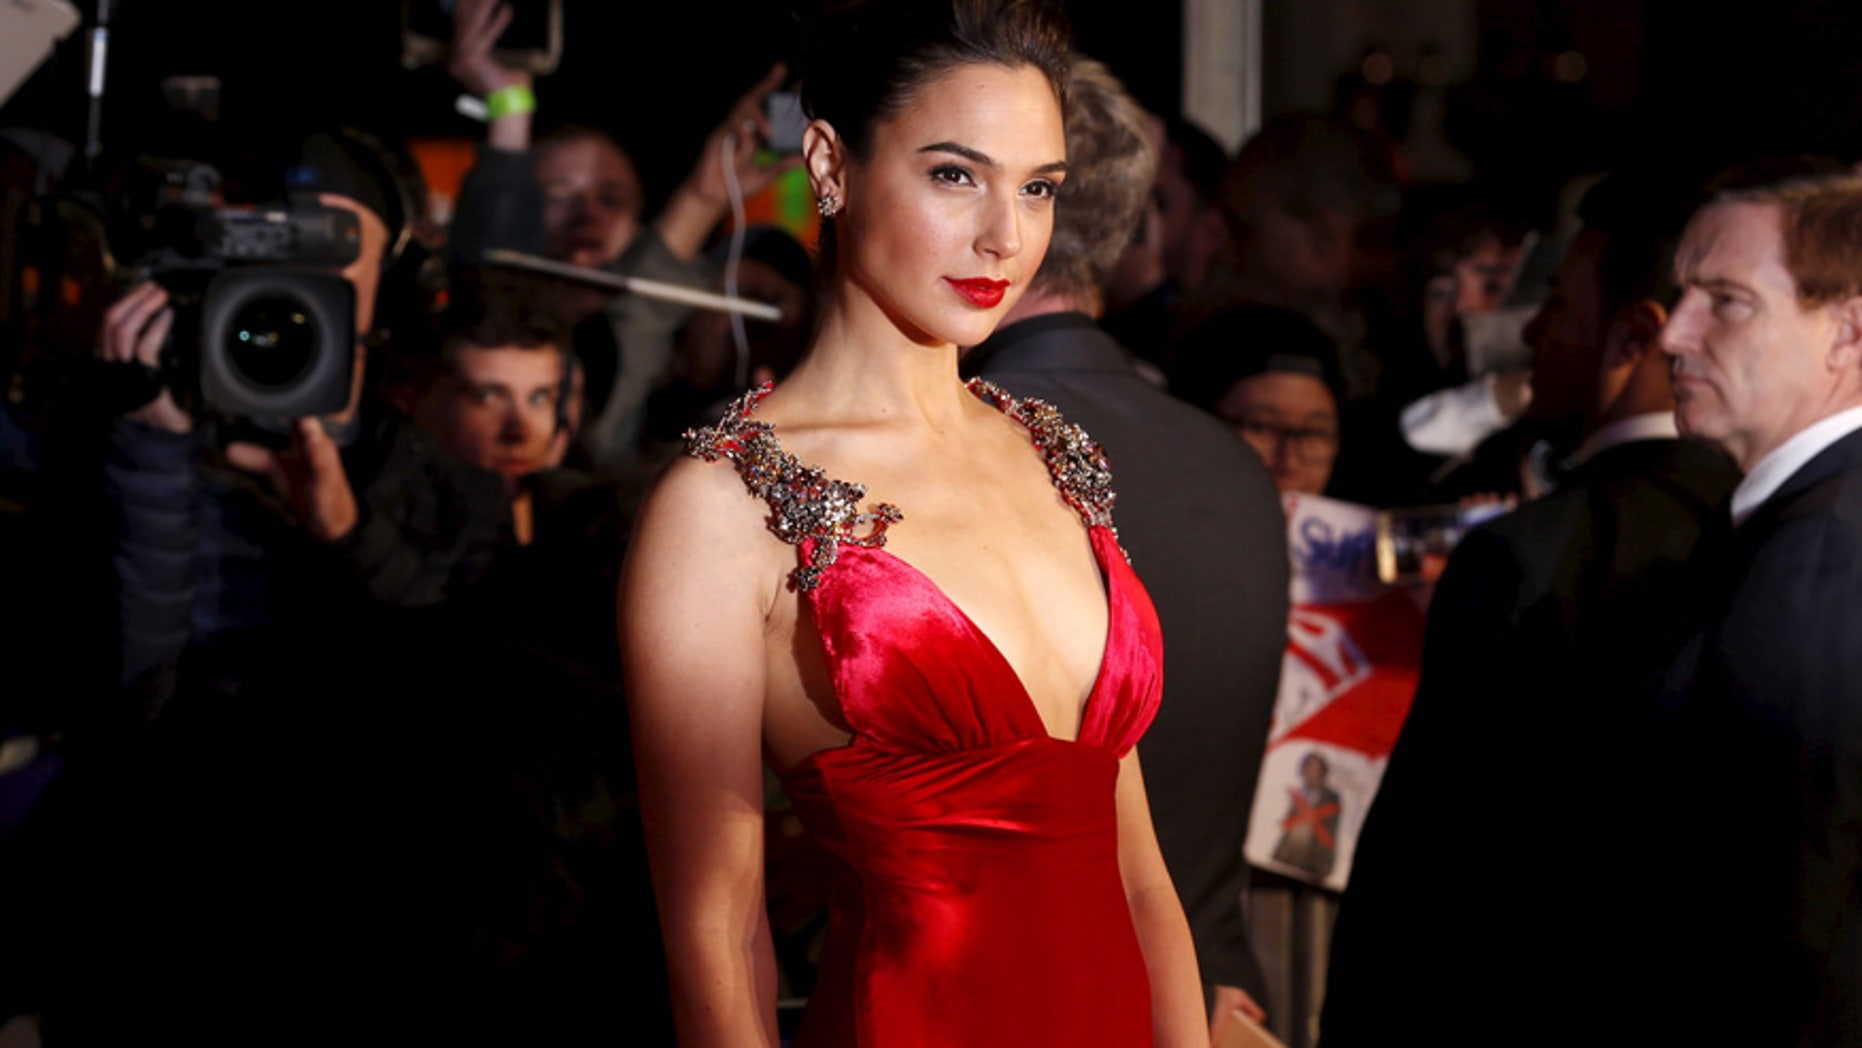 """Gal Gadot arrives for the European Premiere of """"Batman V Superman: Dawn of Justice"""" in Leicester Square in London, Britain, March 22, 2016. REUTERS/Luke MacGregor - RTSBRZB"""